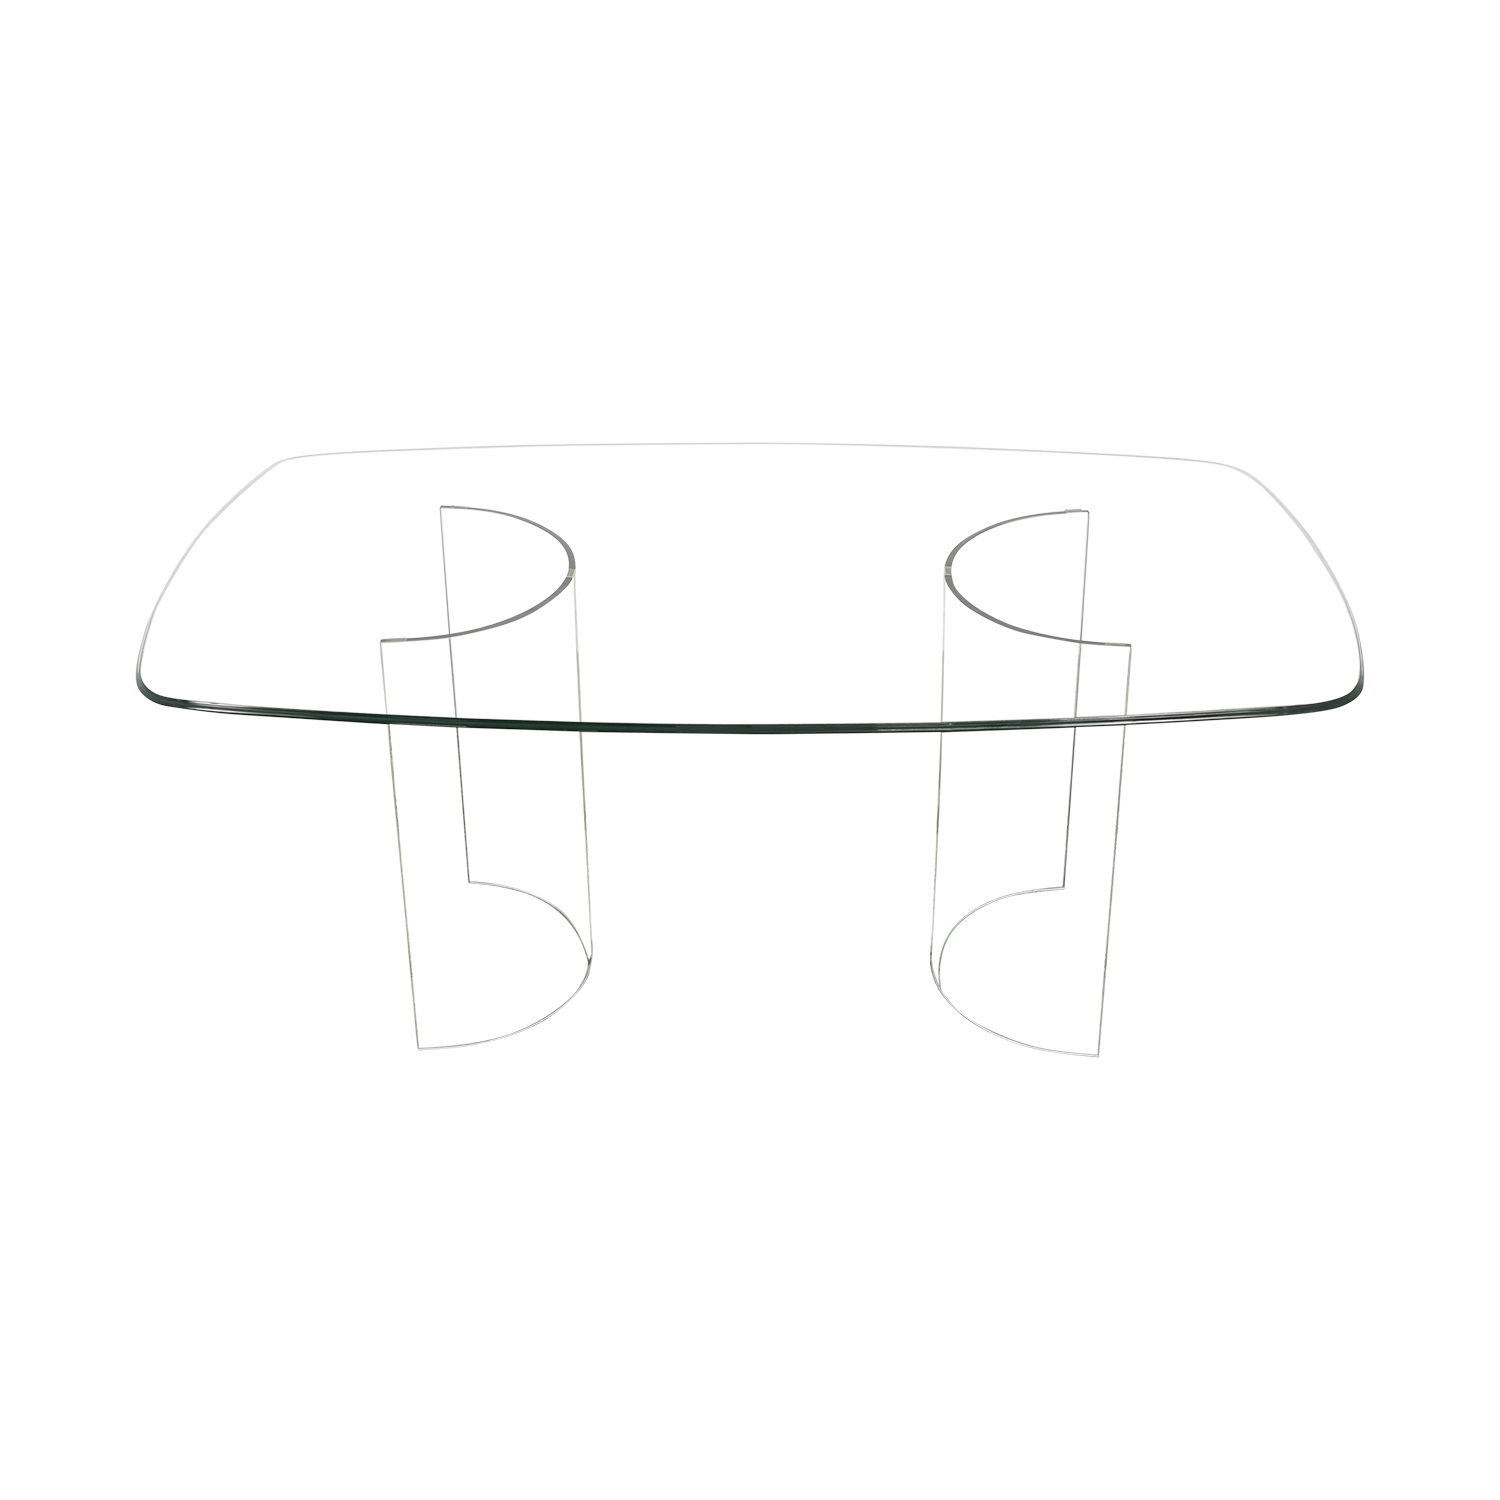 Raymour & Flanigan Beveled Tempered Glass Dining Table Raymour & Flanigan